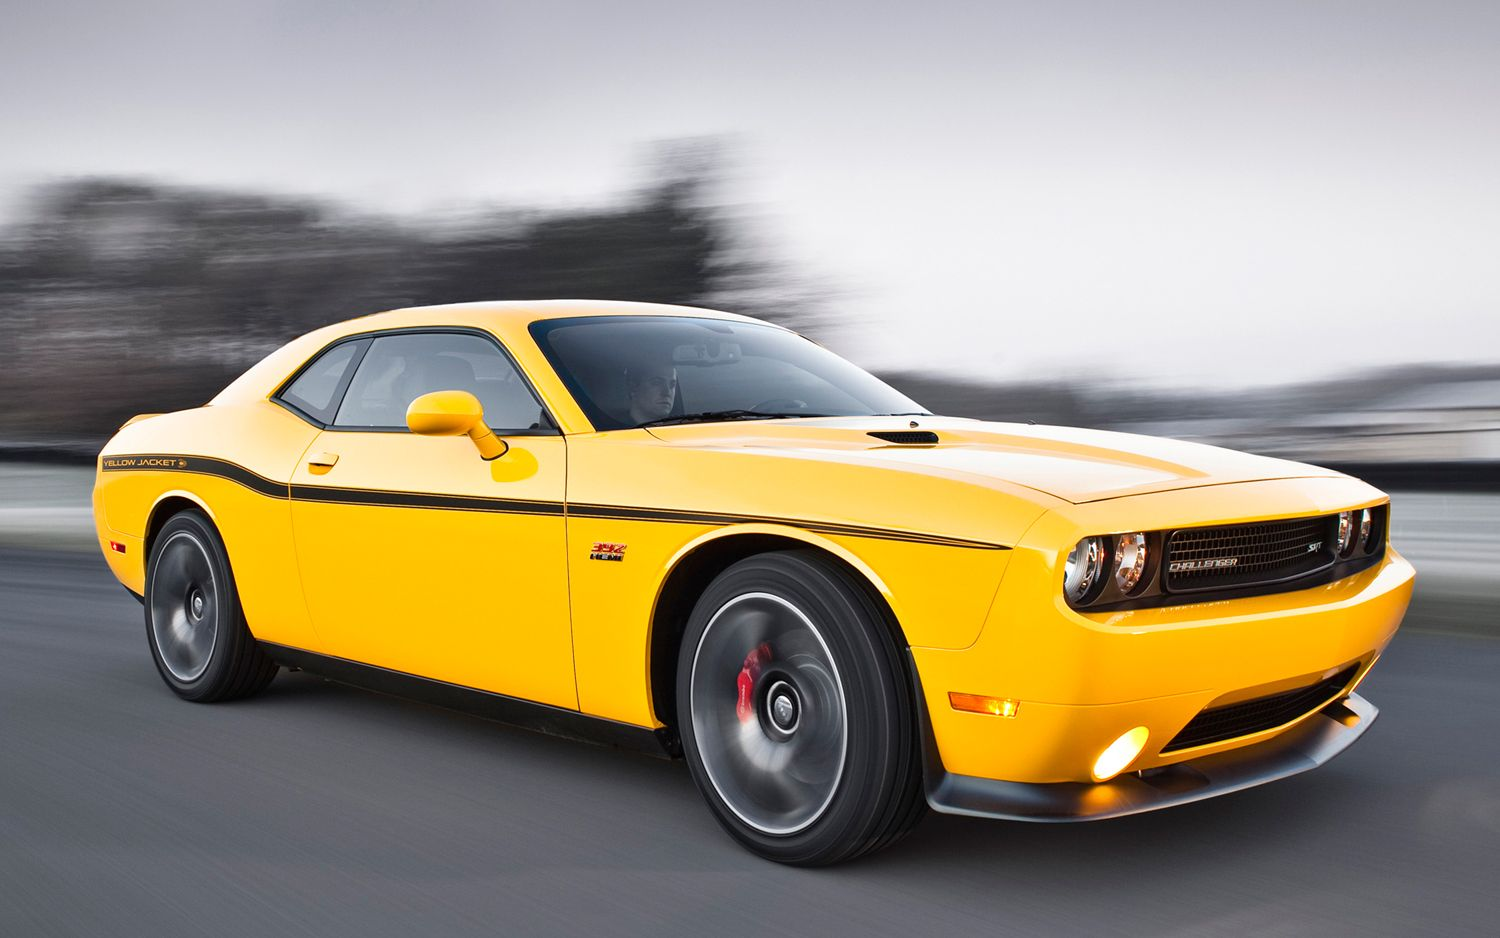 Dodge challenger srt8 392 wallpaper http wallautos com dodge